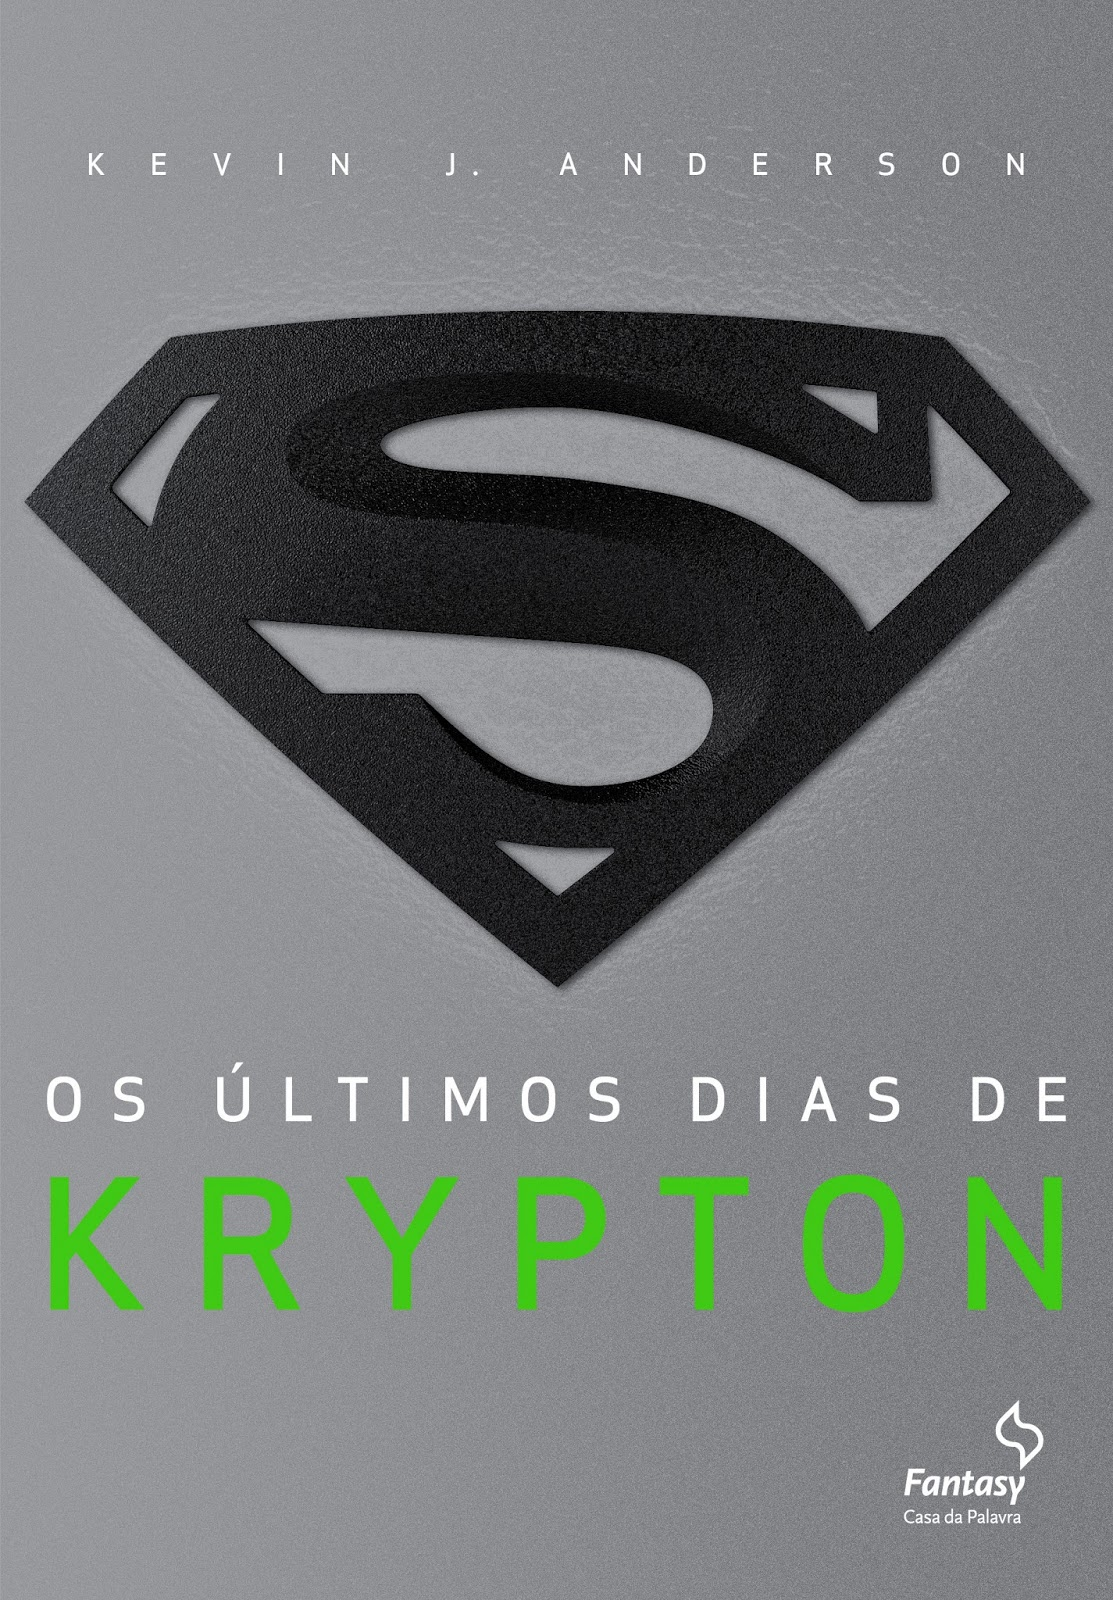 Os+%C3%BAltimos+dias+de+Krypton+-+Kevin+